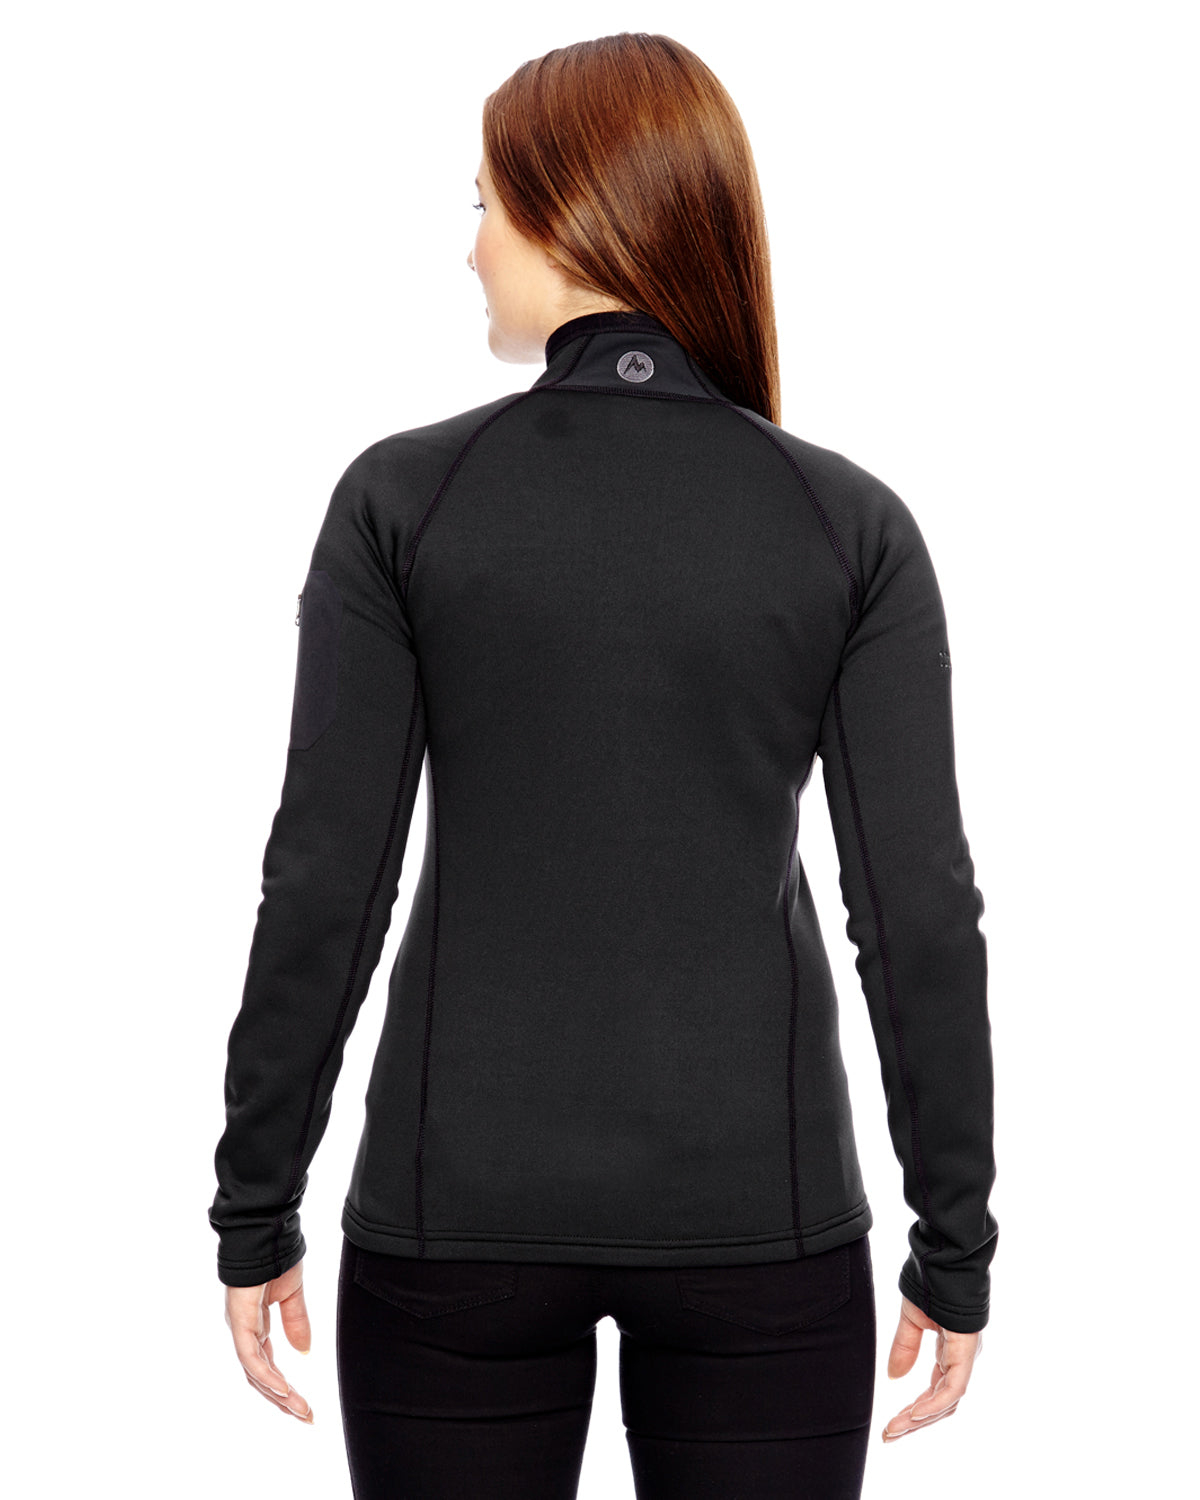 MARMOT® LADIES STRETCH FLEECE JACKET